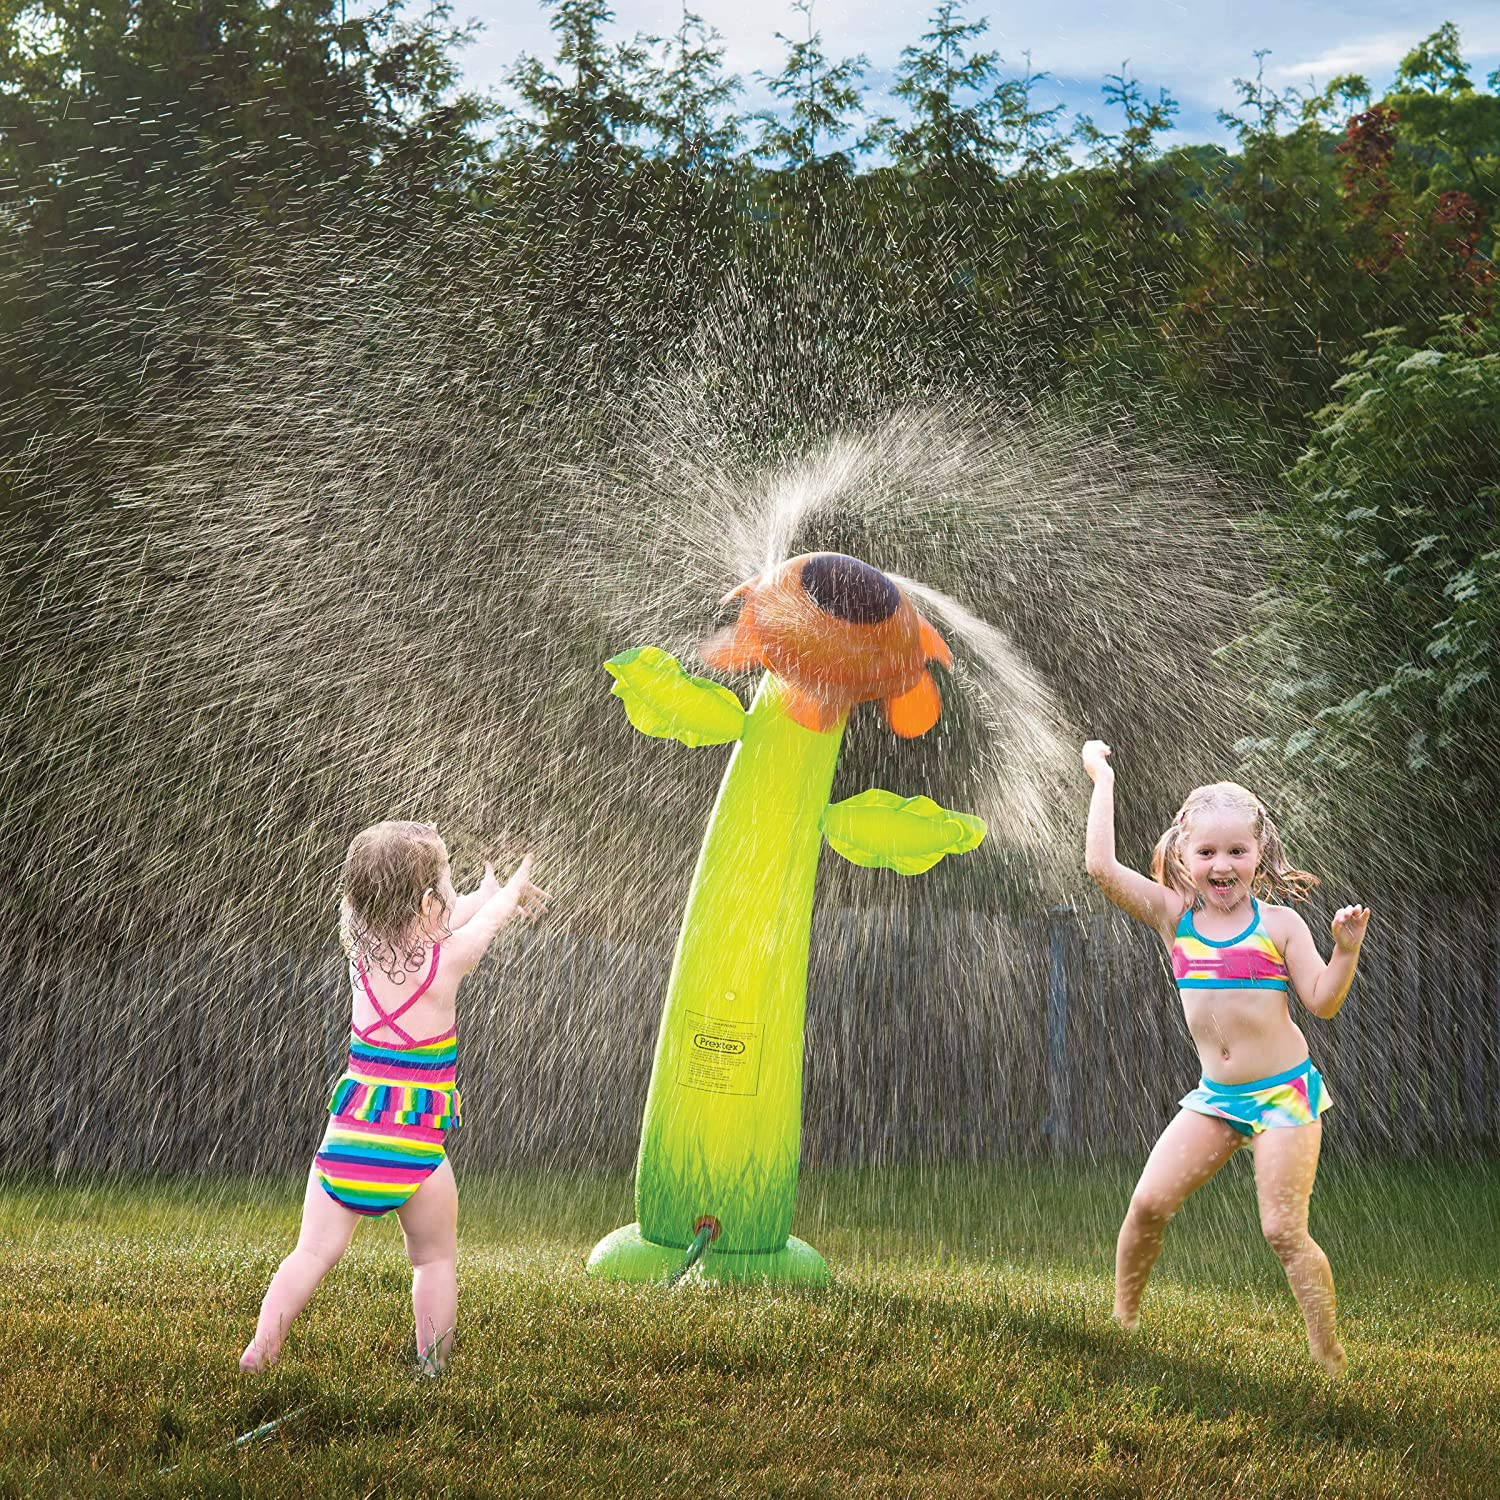 Prextex 5 Ft. Inflatable Water Sprinkler Sunflower Sprinkler Water Toy Fun Outdoor Water Activity for Toddlers and Kids: Toys & Games